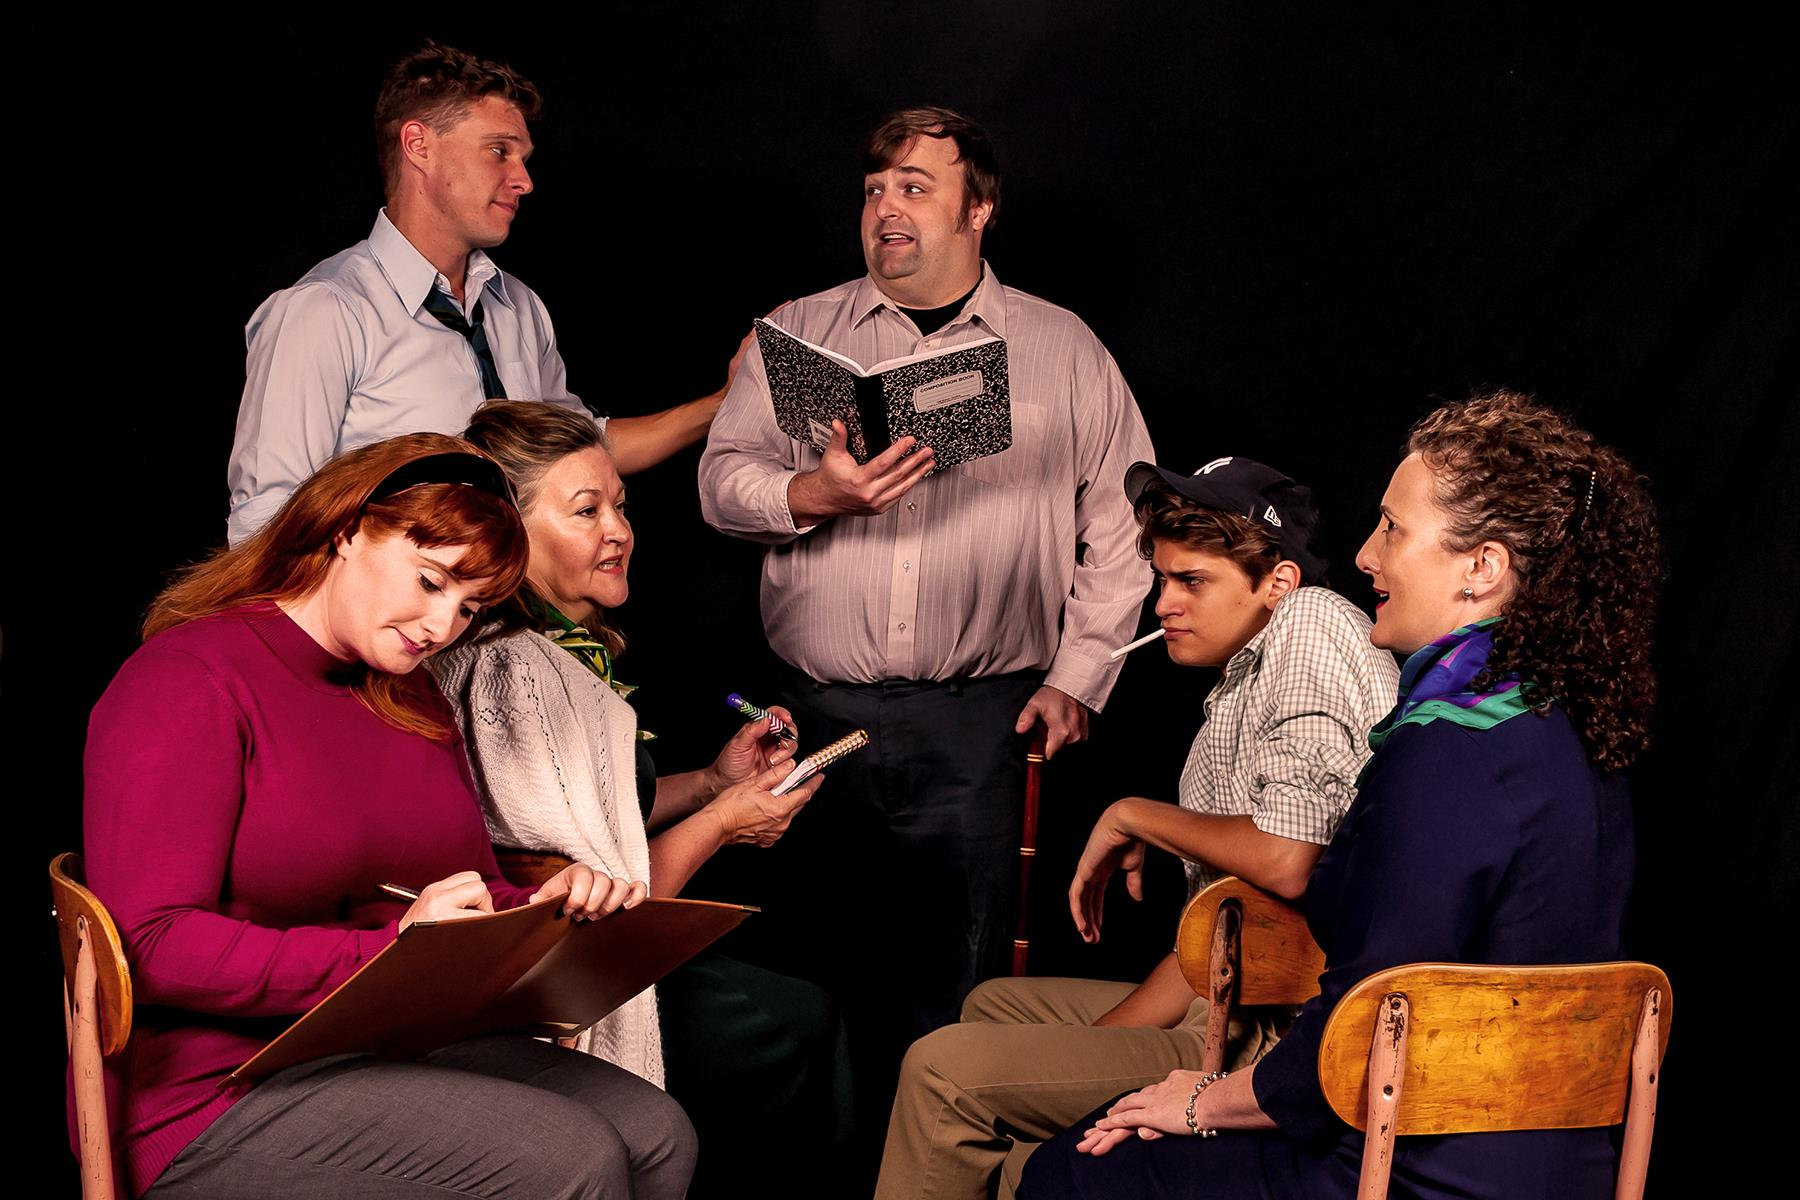 L to R: Robin Schwartz, Ron Giddings, Mary MacLeod, Jeff Sprague, Jack Leitess, and Alicia Sweeney in The Babylon Line, now playing at The Colonial Players of Annapolis. Photo by Colburn Images.